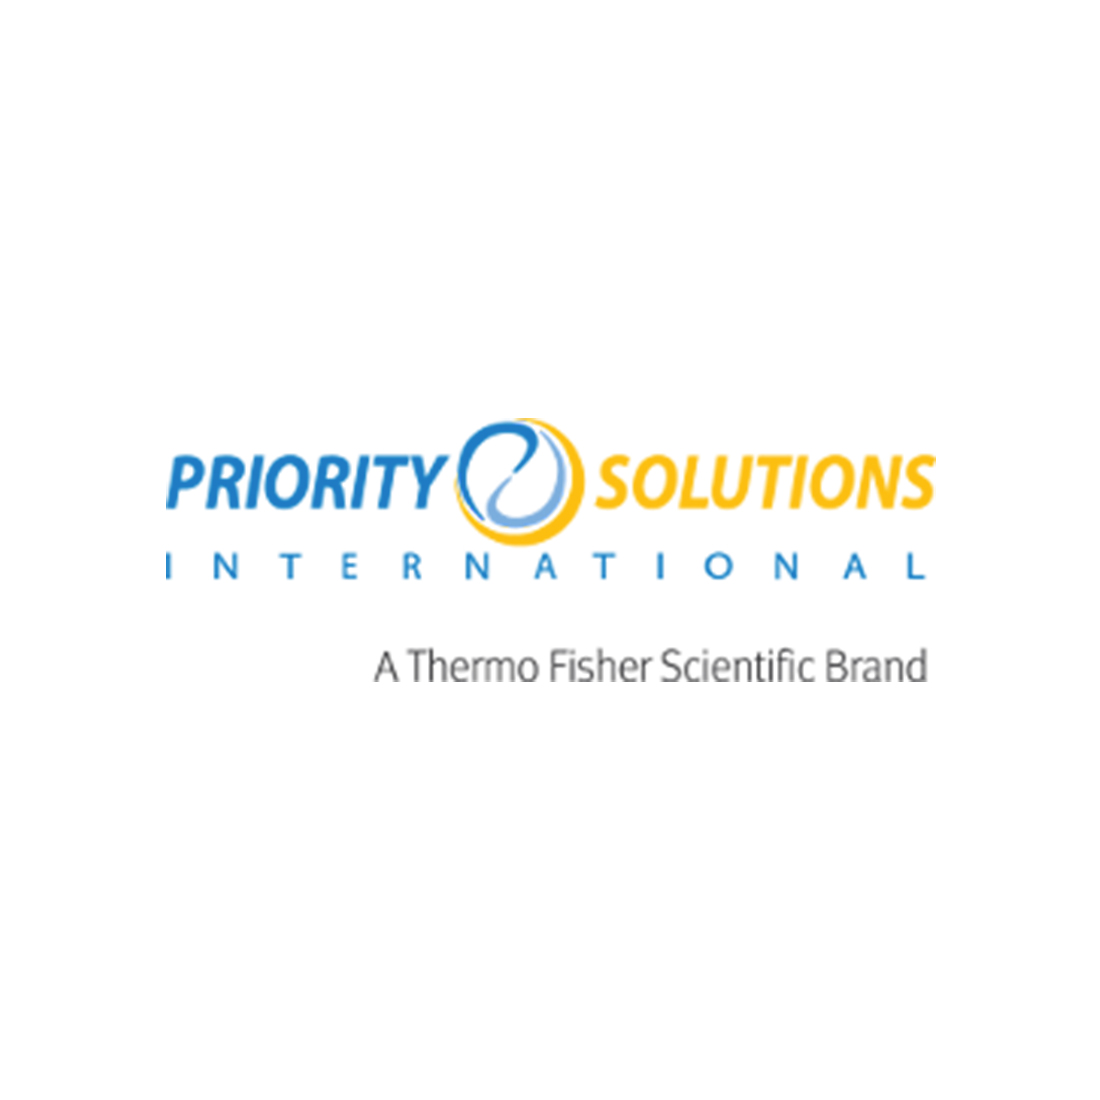 Priority Solutions International